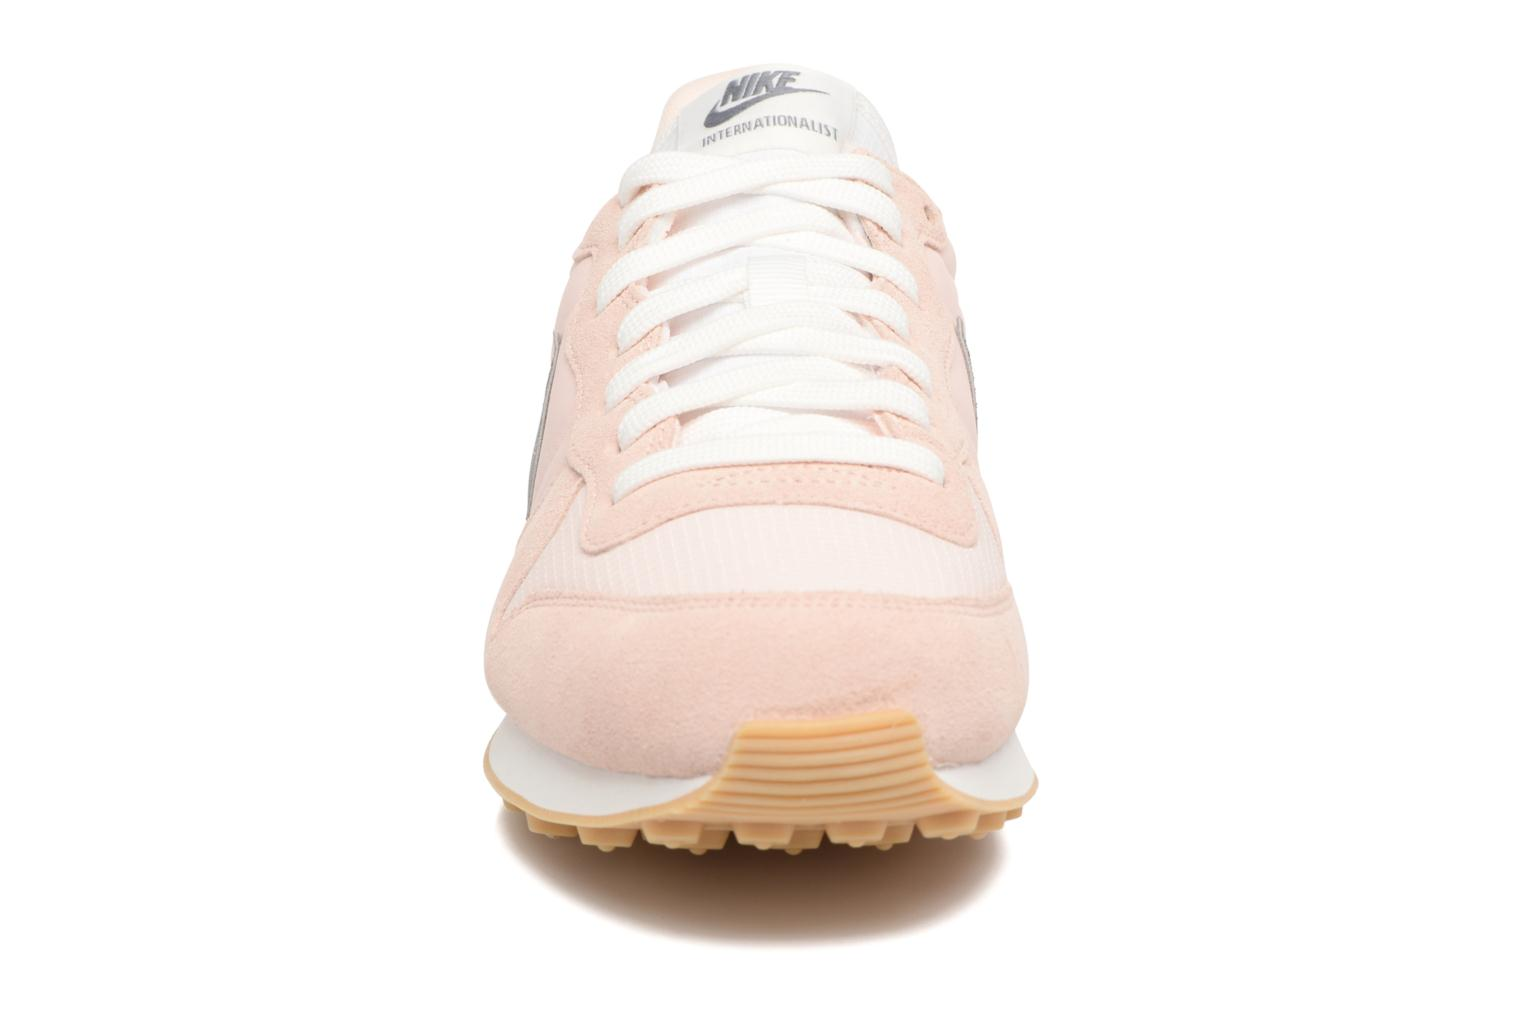 Wmns Internationalist SUNSET TINT/COOL GREY-SUMMIT WHITE